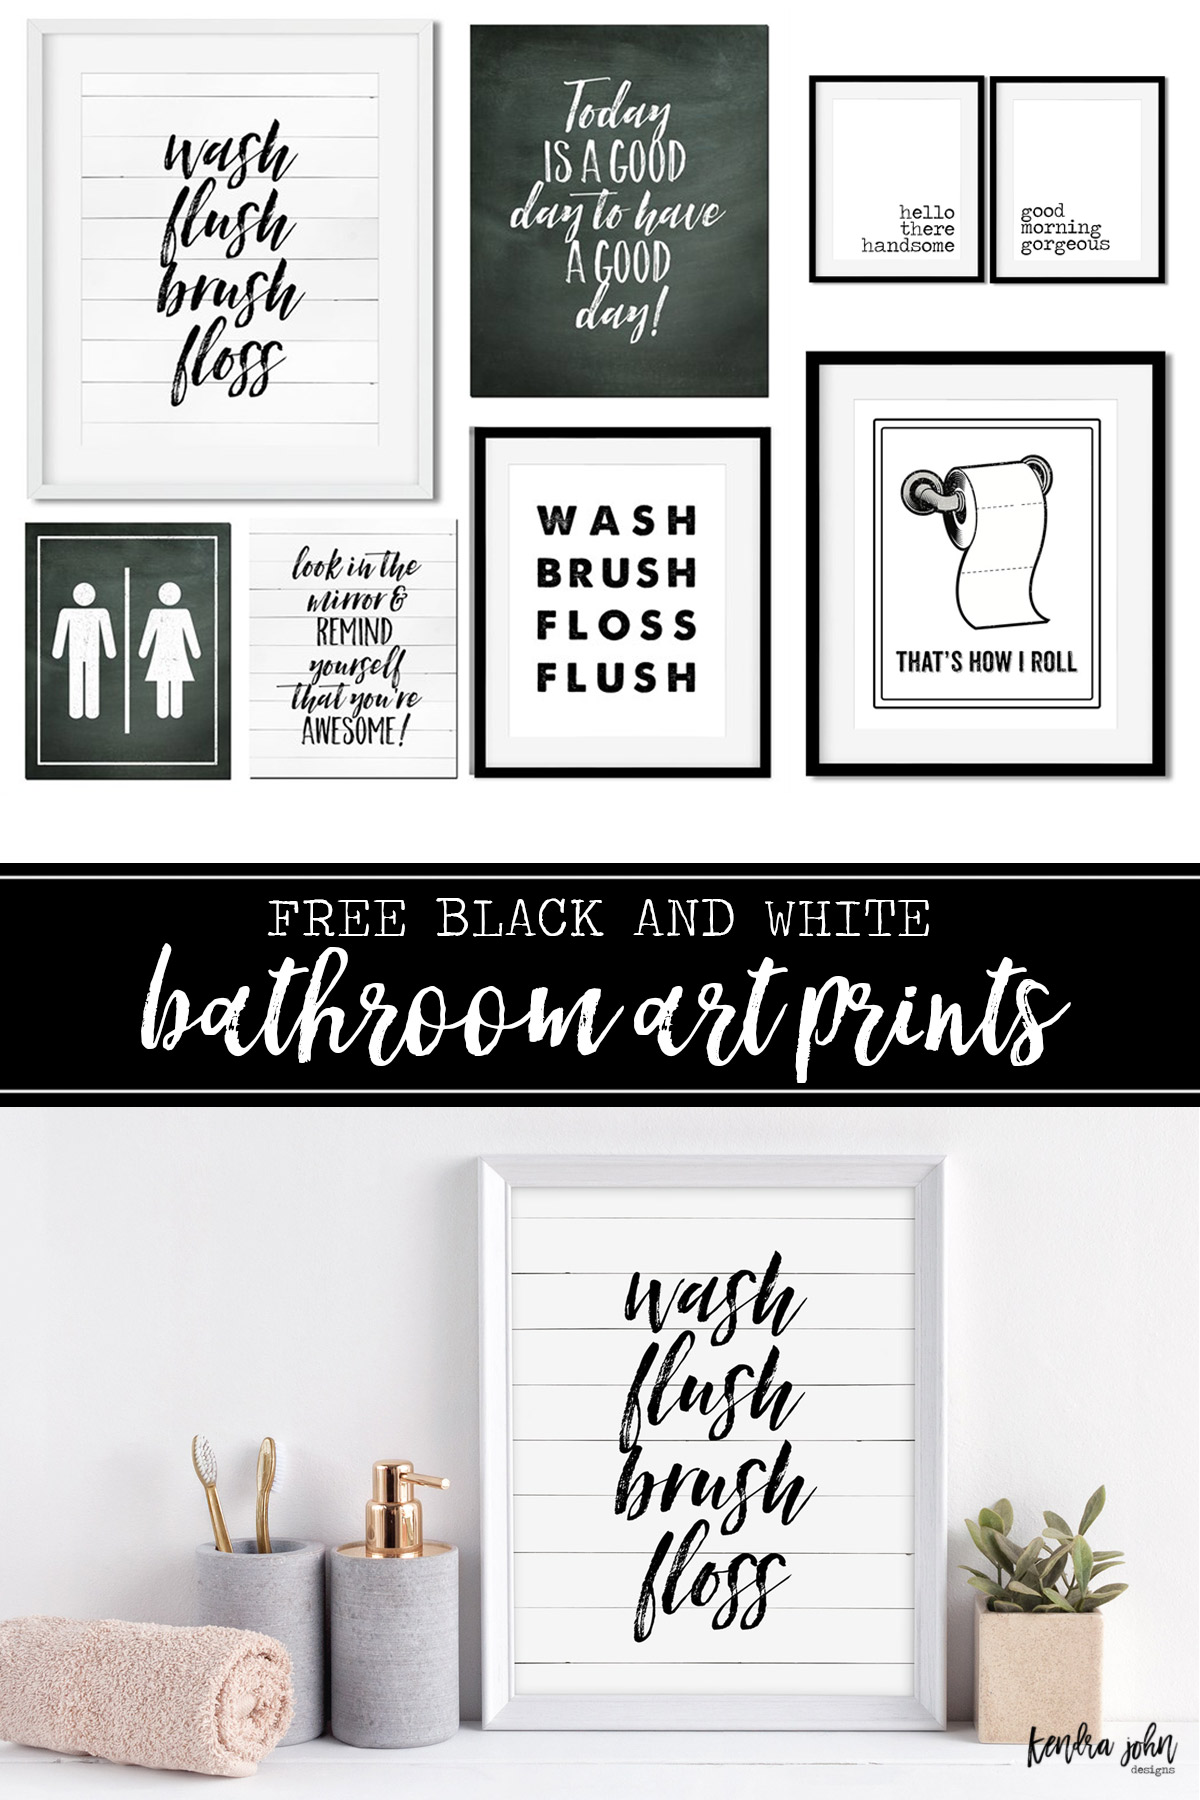 Bathroom Prints Kendra John Designs